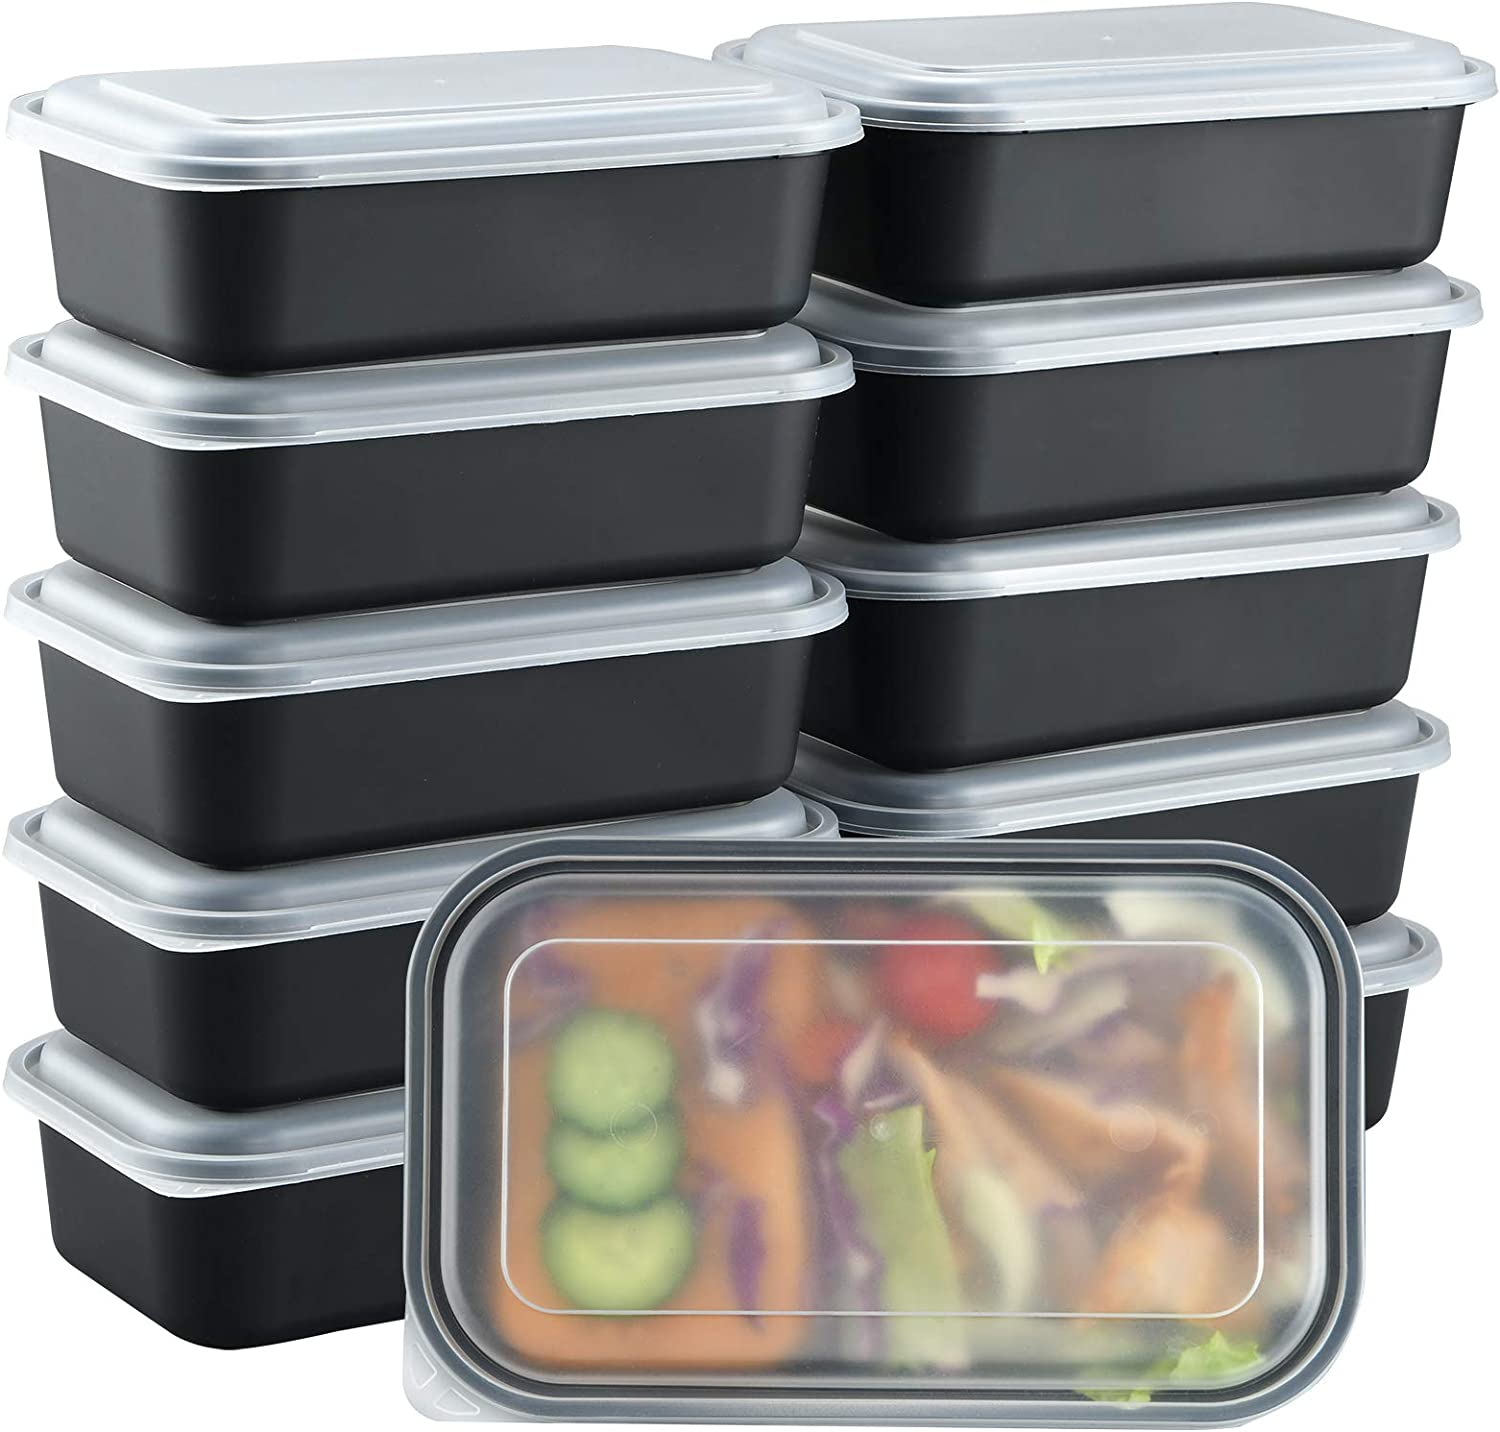 Plastic Meal Prep Containers, 32 oz, 10 PACK, Food Storage Disposable Containers with Lids Airtight, Togo Food Containers for Frozen Meal, Reusable Lunch Bento Box, Microwave and Freezer Safe